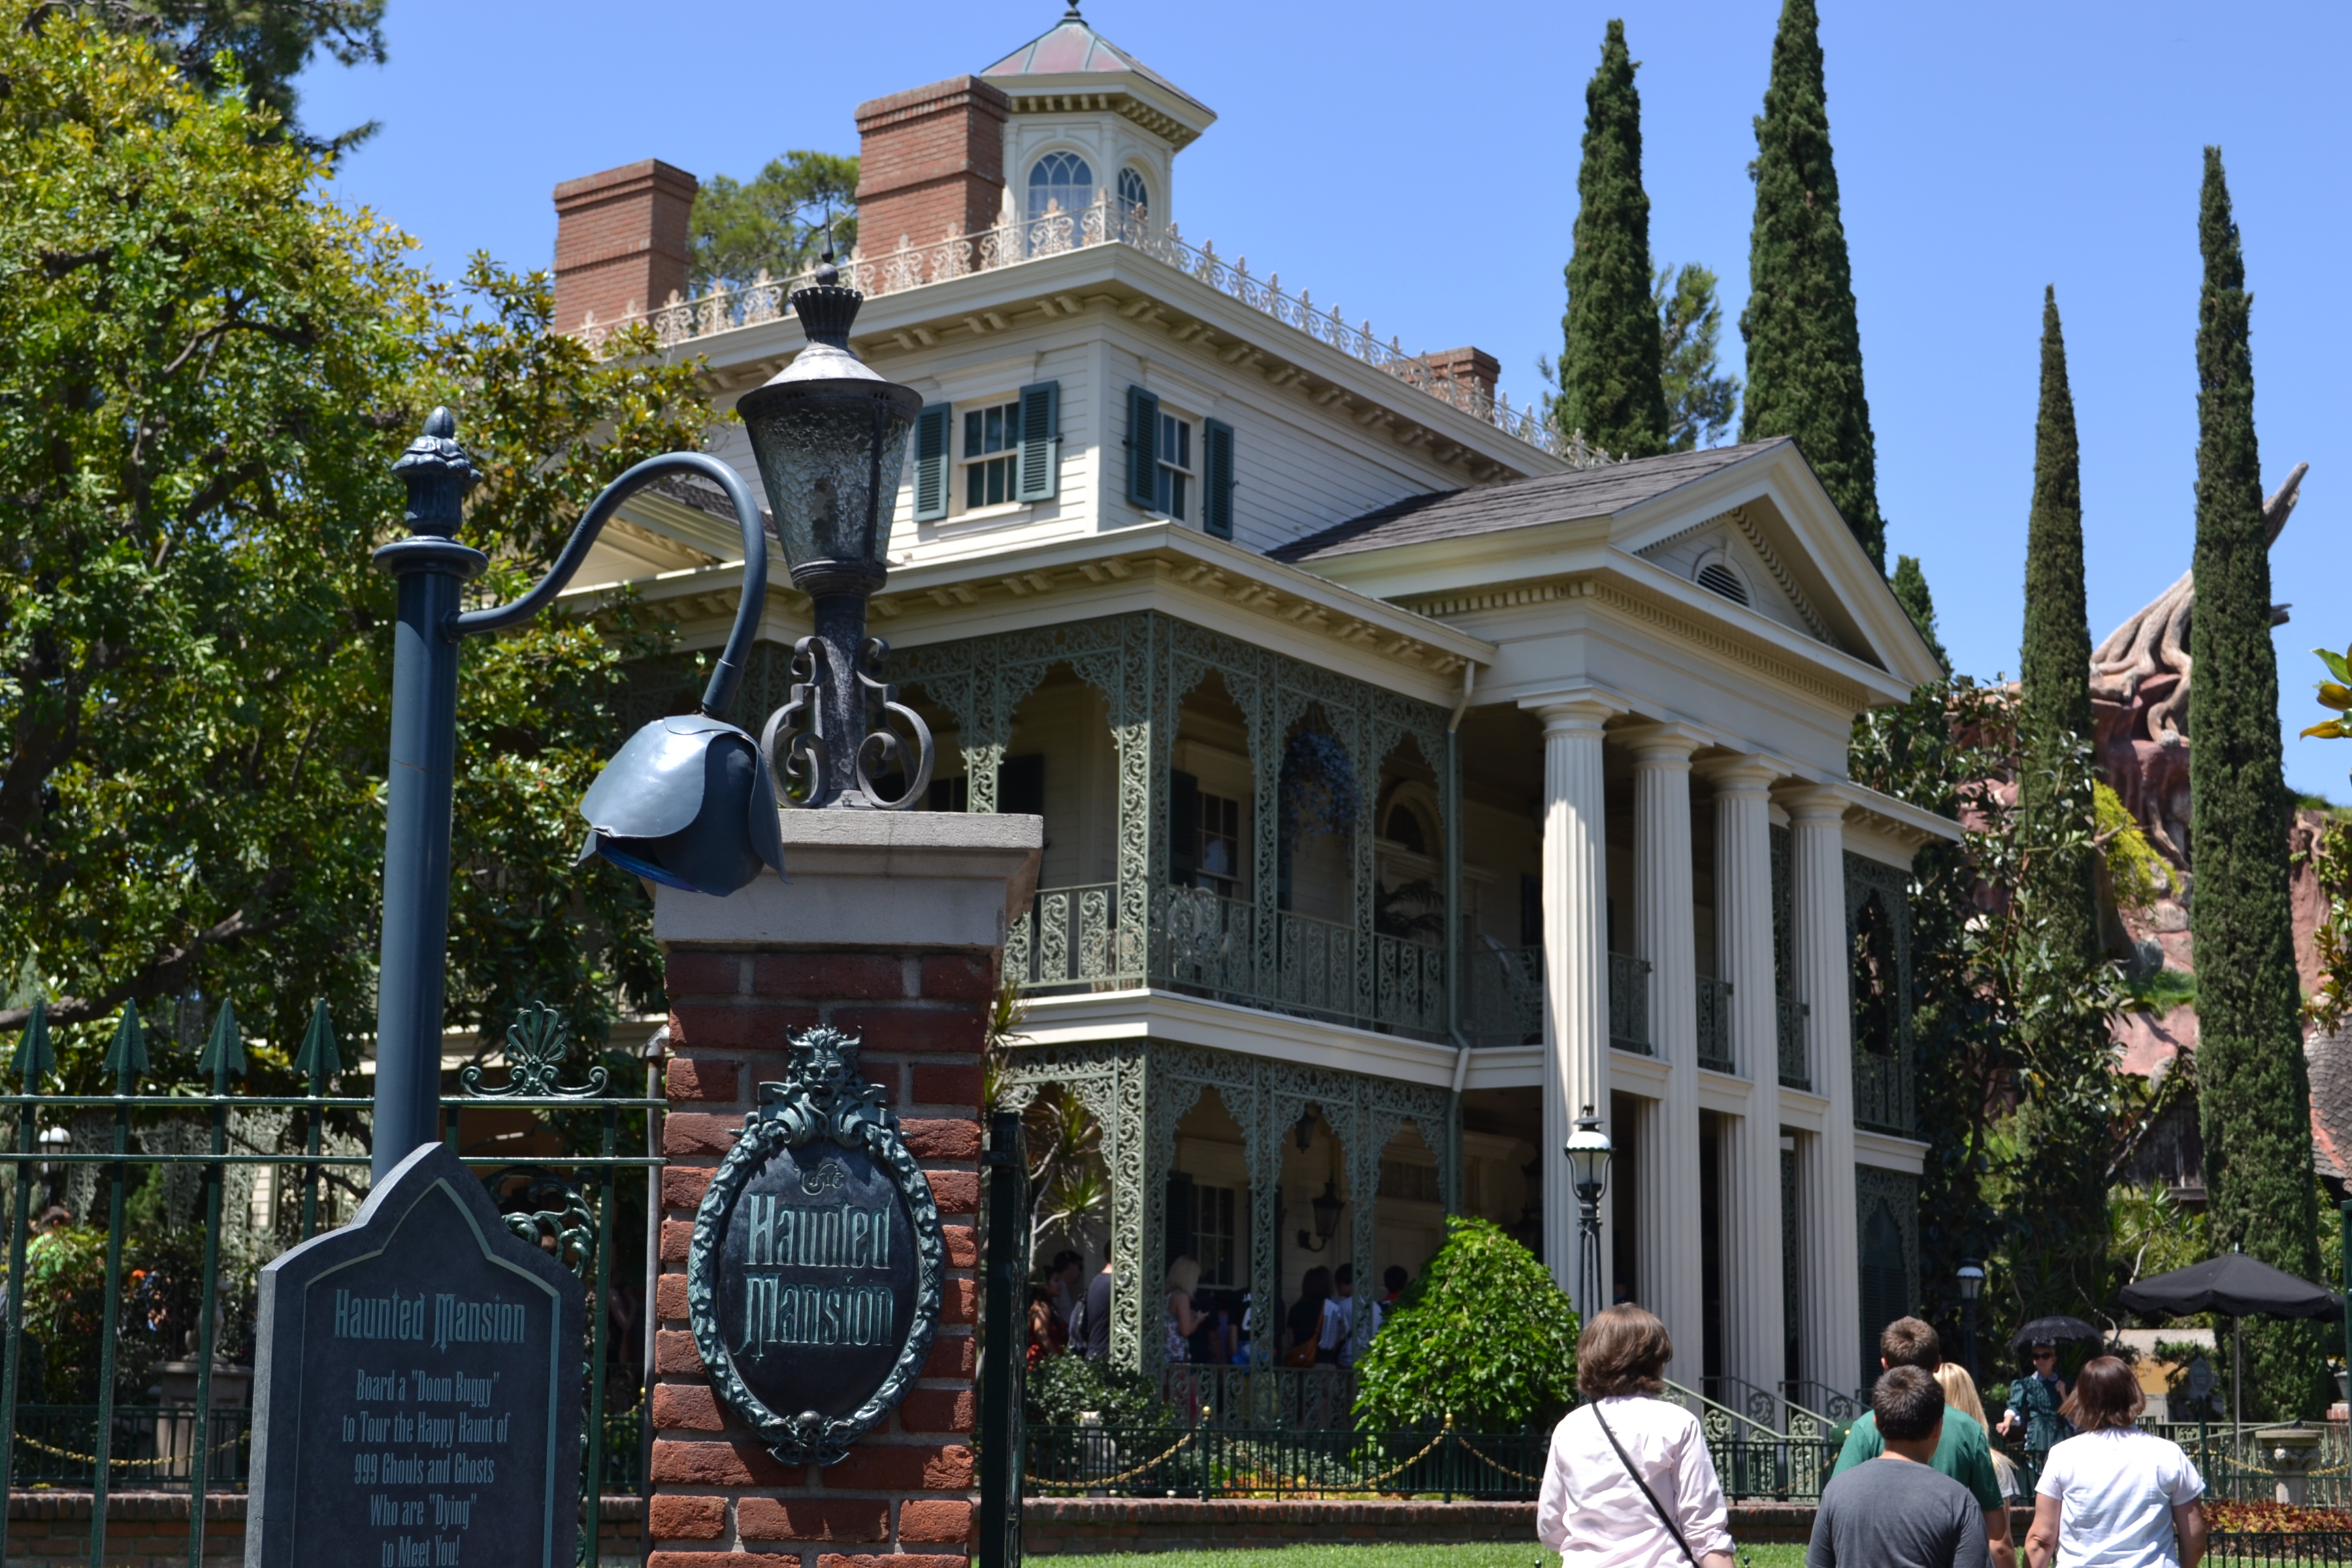 The Haunted Mansion remains mostly unchanged.